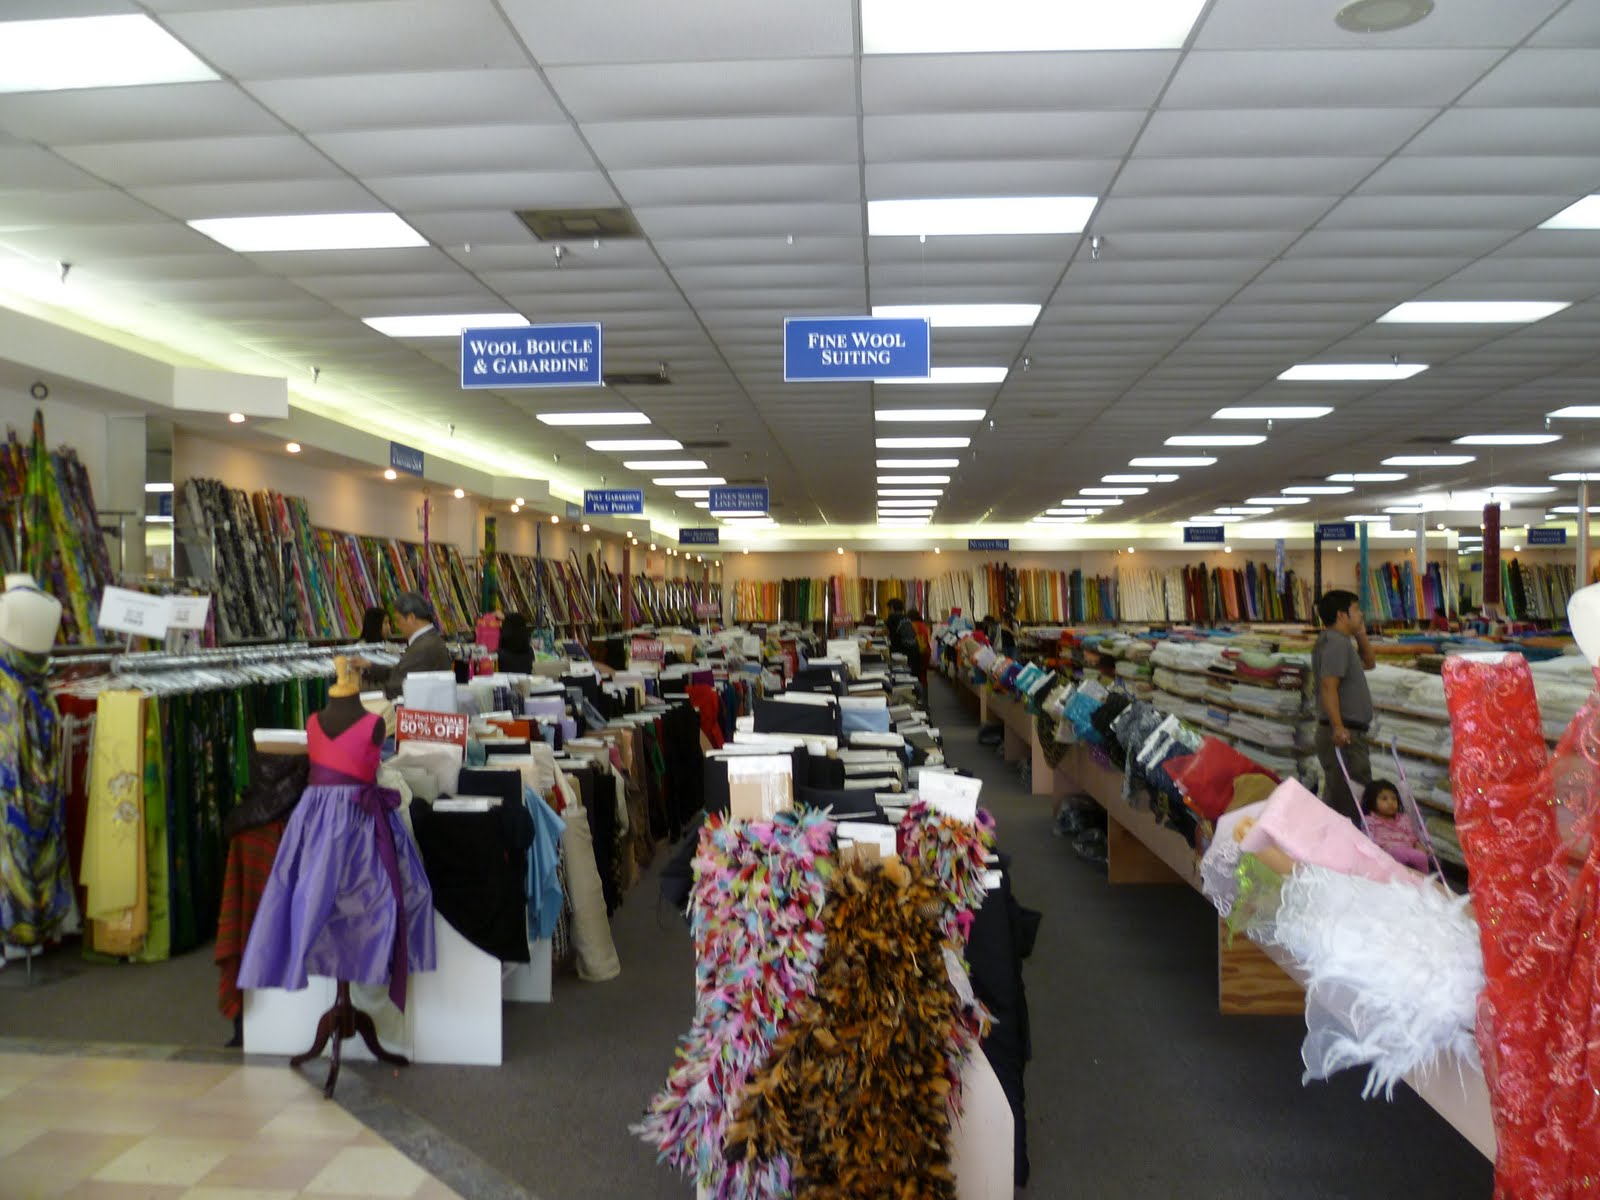 High Fashion Fabric Houston - This is high fashion fabrics insert angel choir music here there s a whole wall of embroidered silks and the wool gabardine section is separate from the